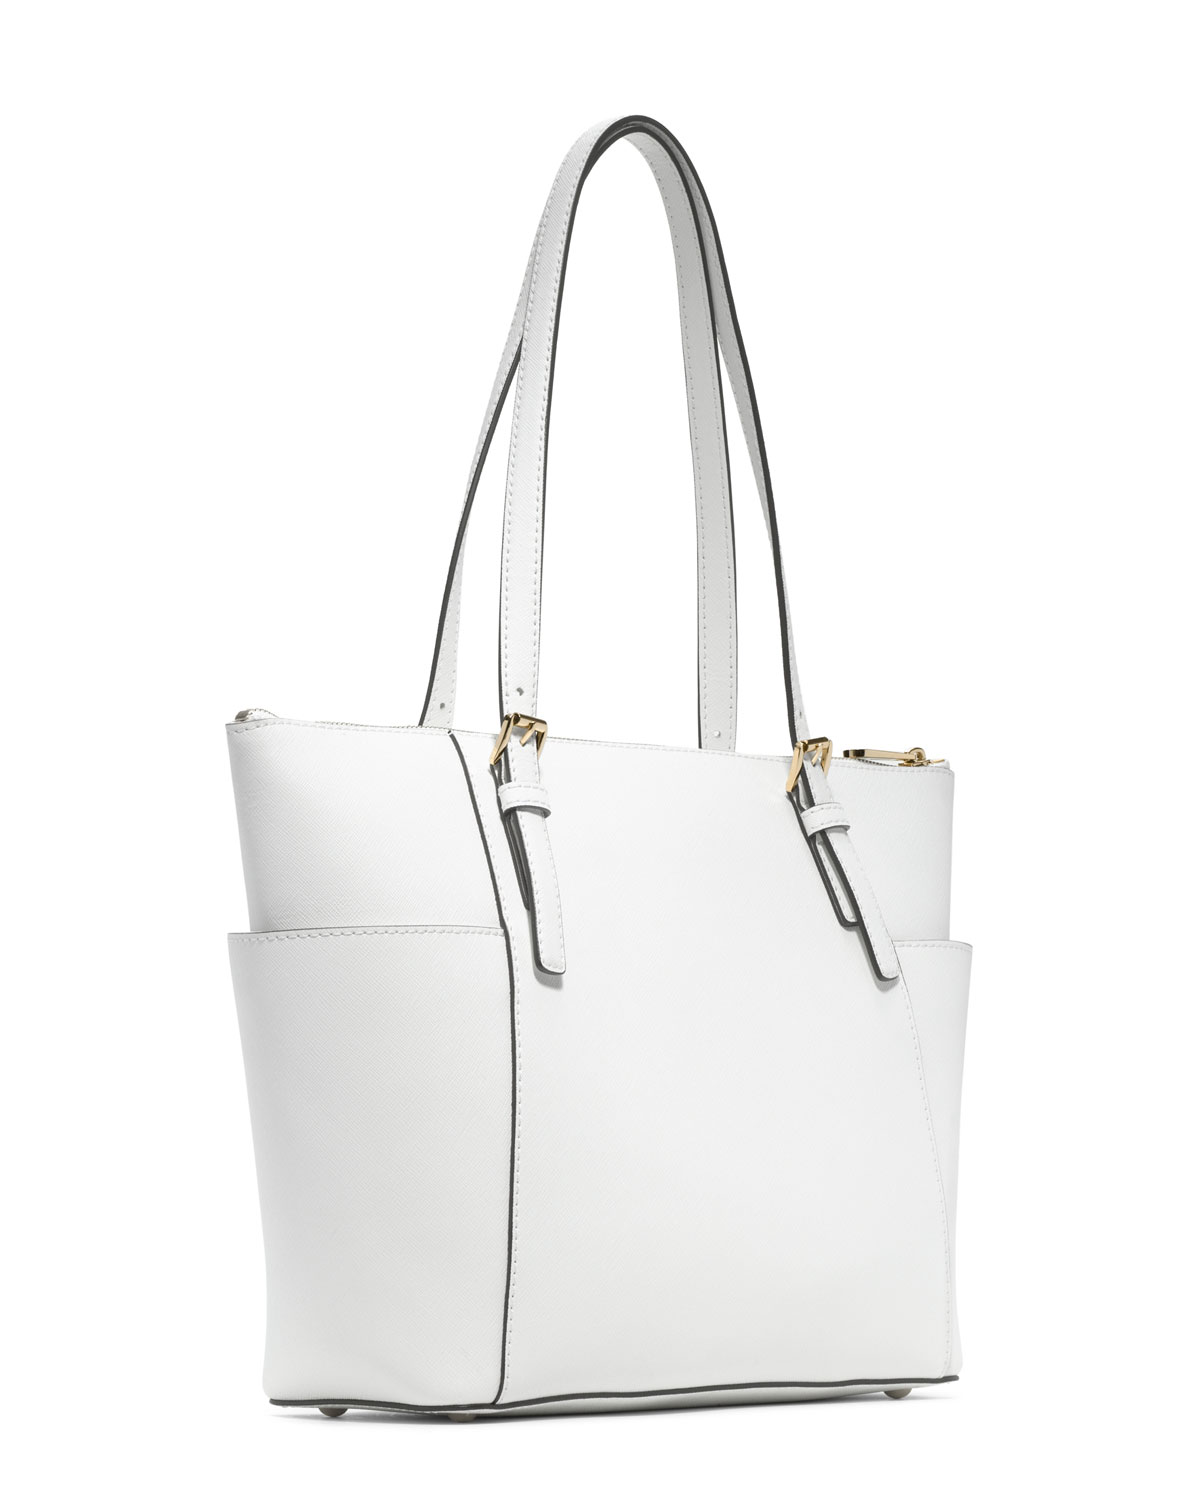 Jet Set Item East-West Top Zip Tote Bag in Optic White Saffia Leather Michael Michael Kors wHMYdTx